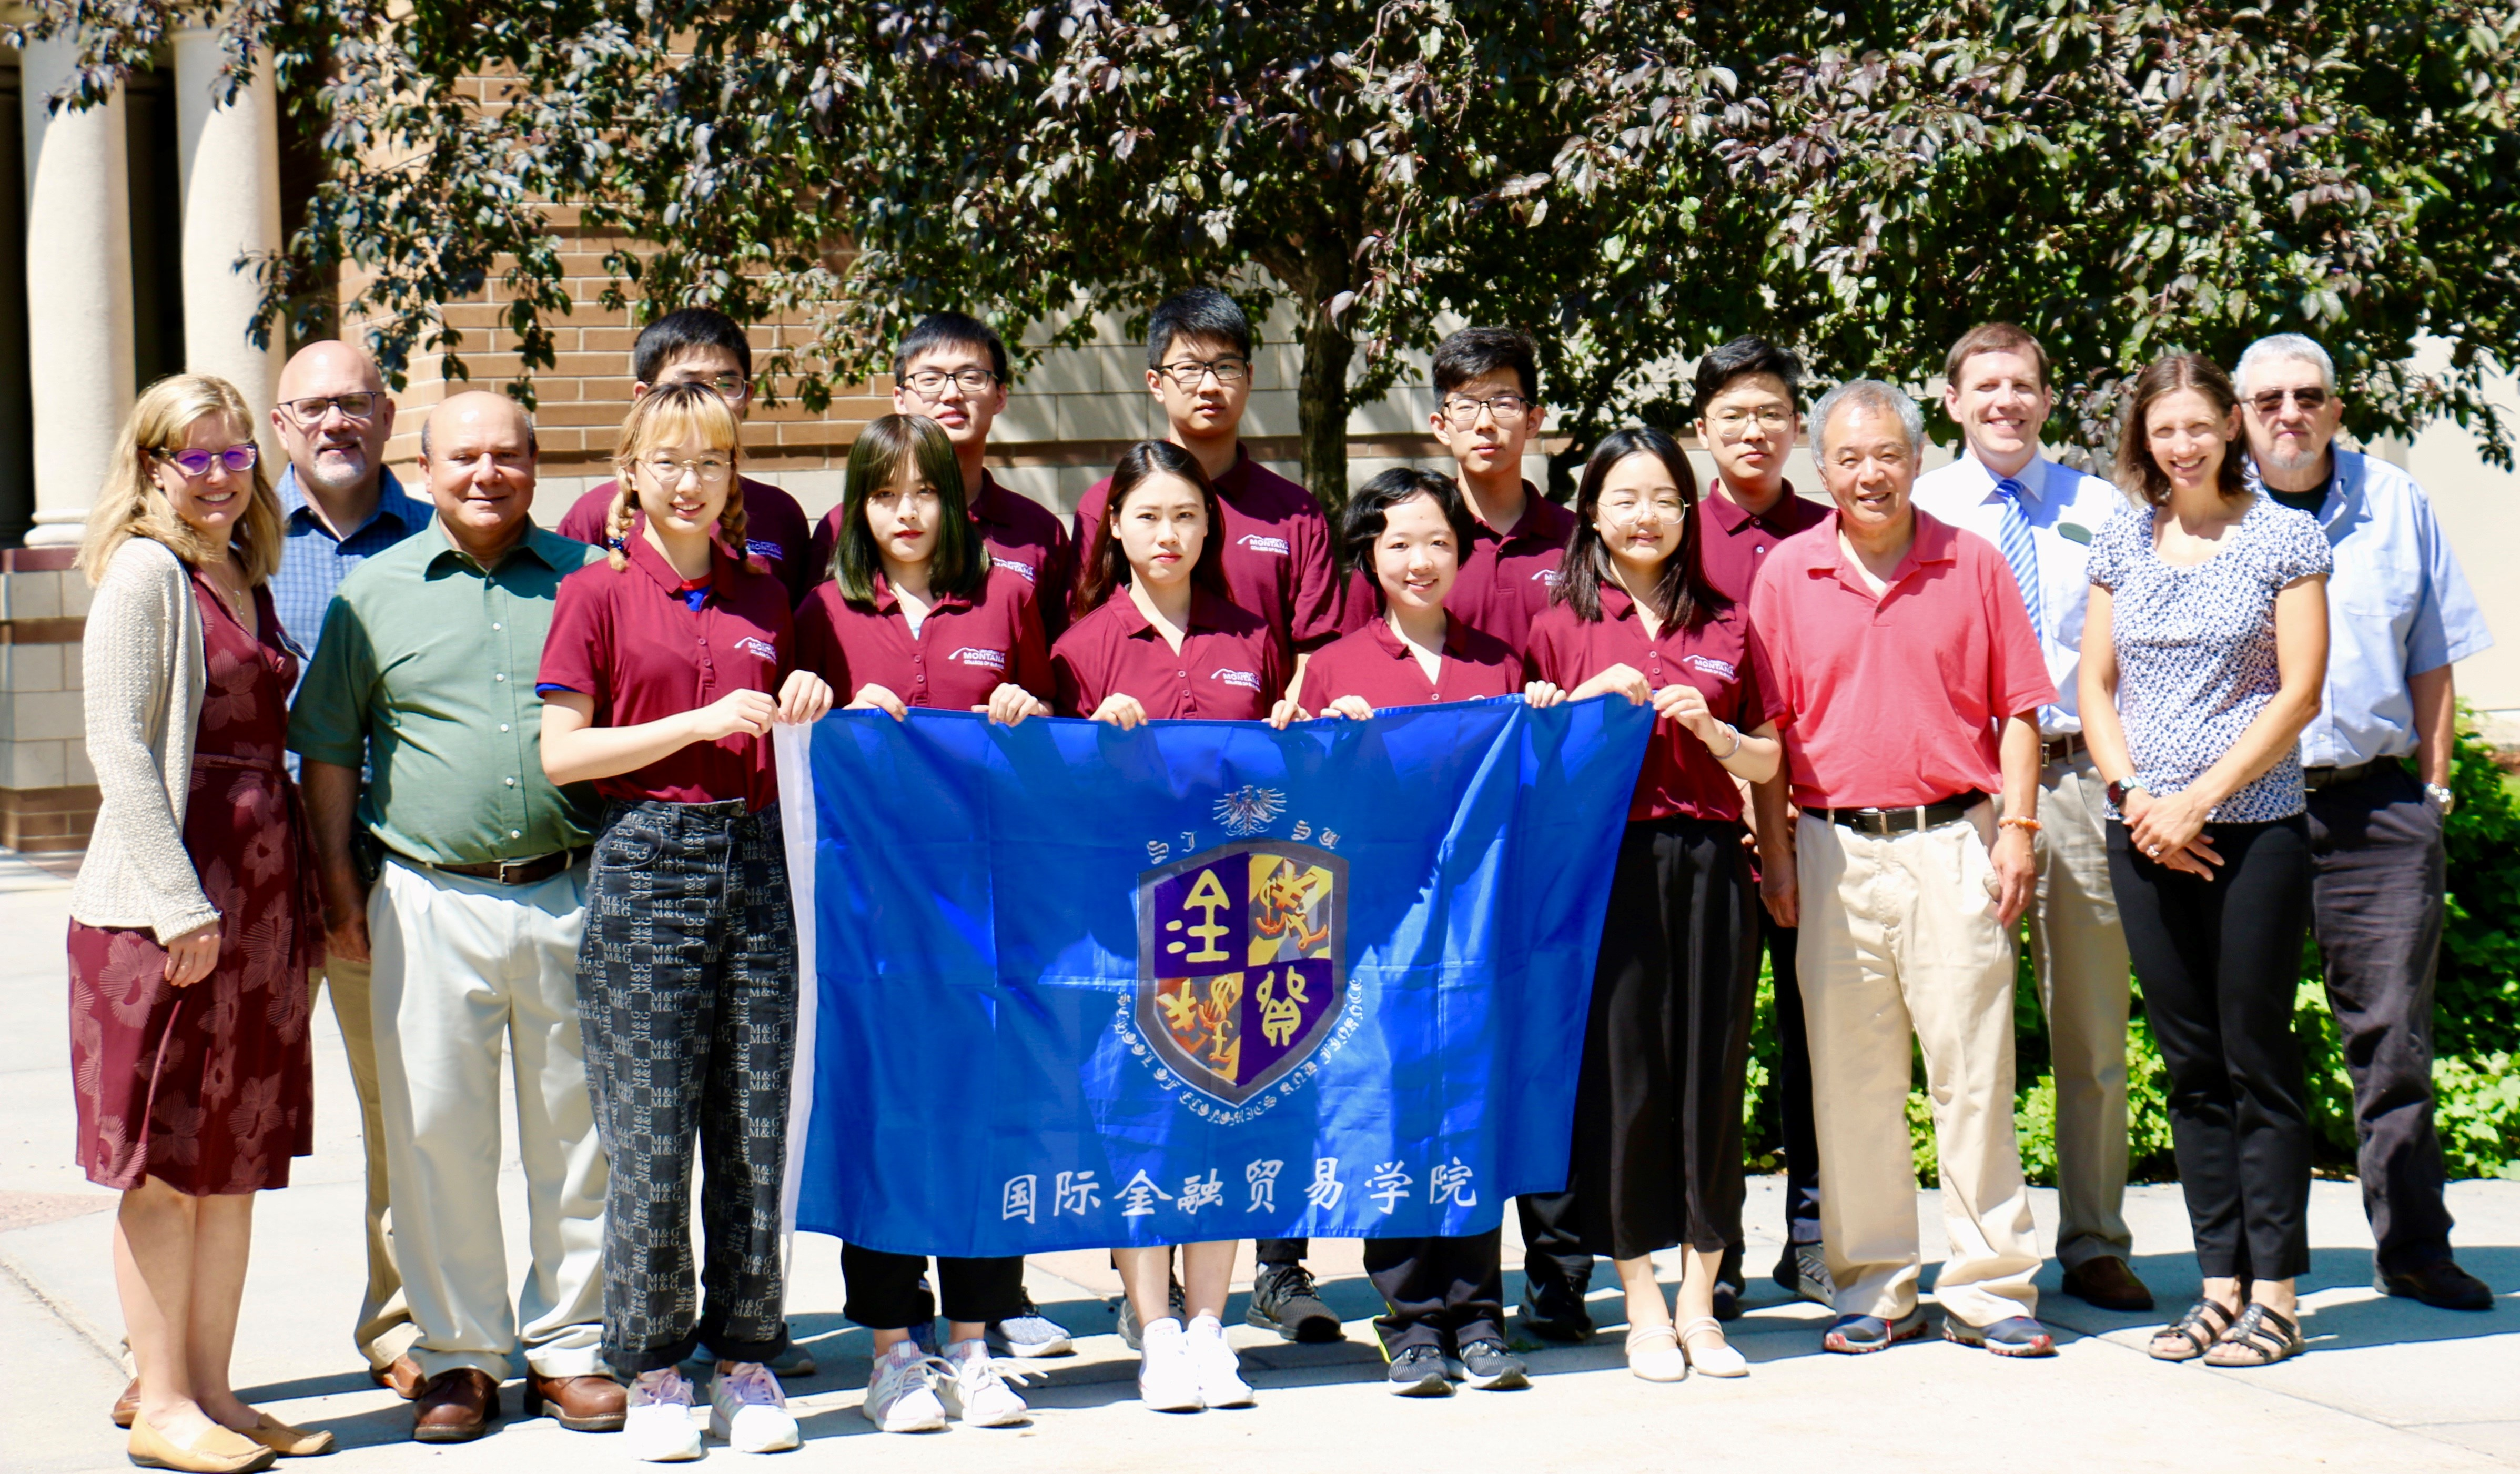 College of Business welcomes Chinese students from Shanghai International Studies University